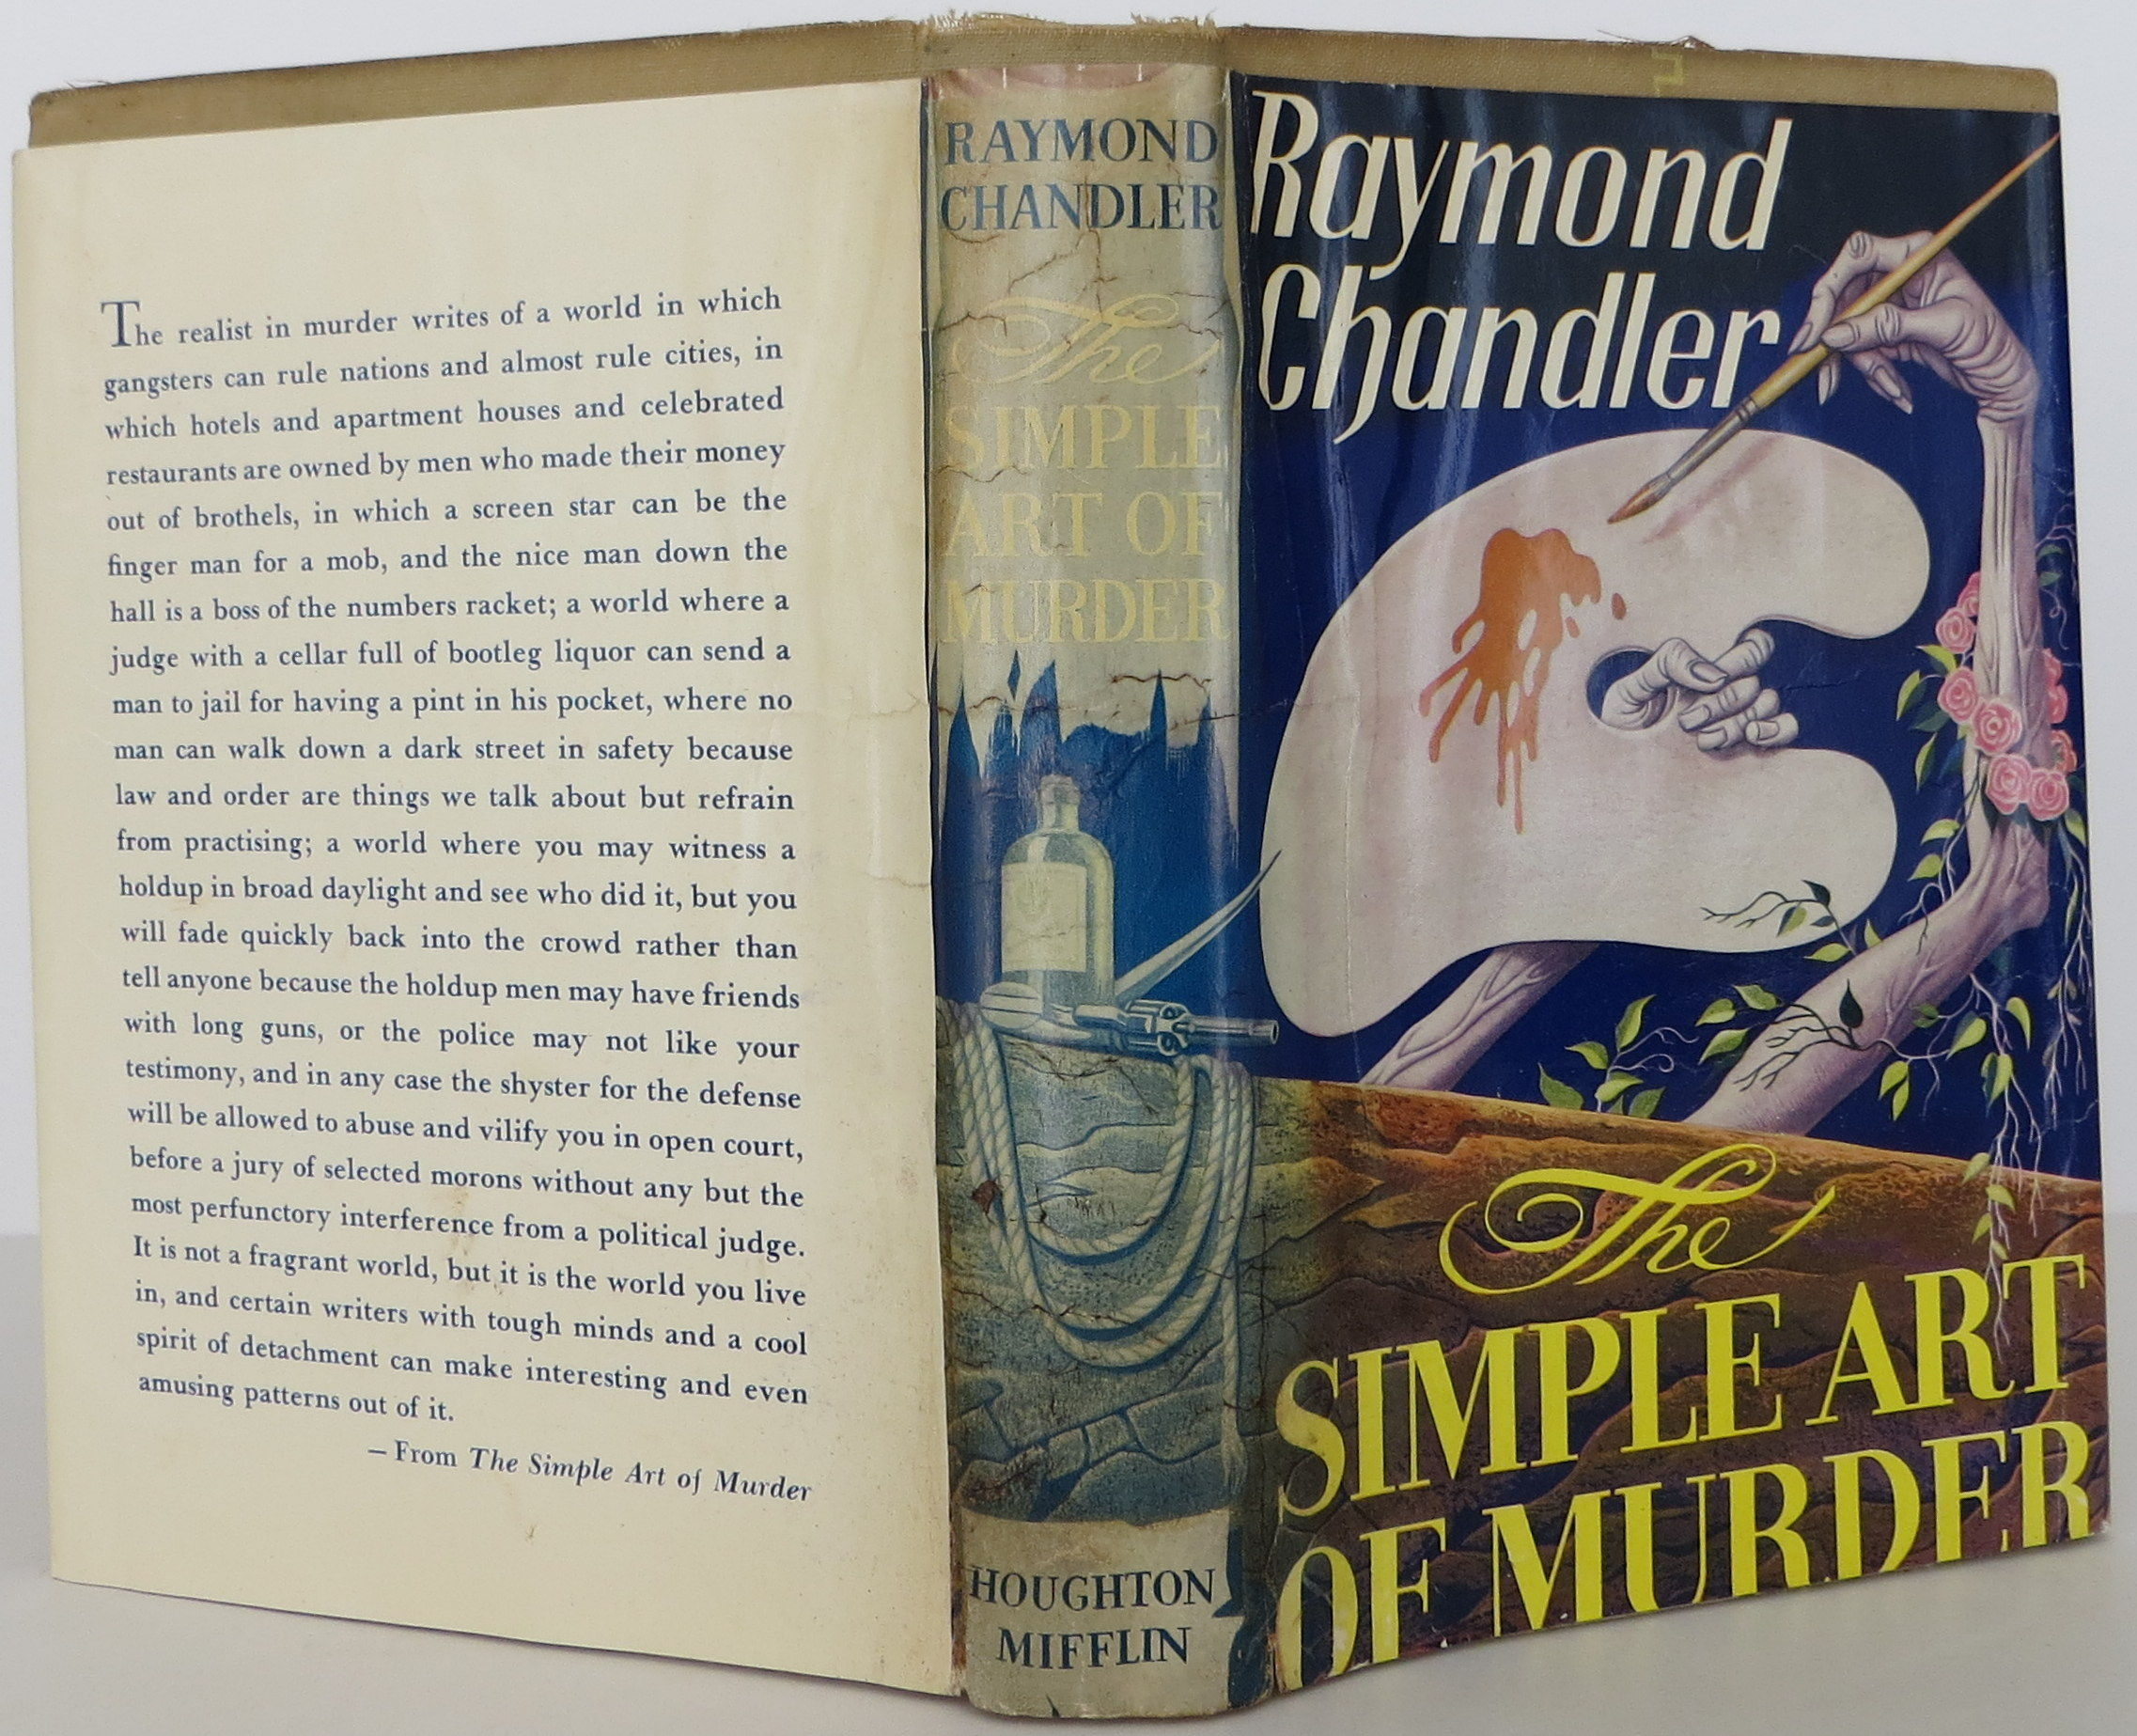 simple art of murder raymond chandler essay Raymond chandler, one of my favorite  the simple art of murder includes eight of his short stories as well as his famous essay from atlantic monthly that gave the.